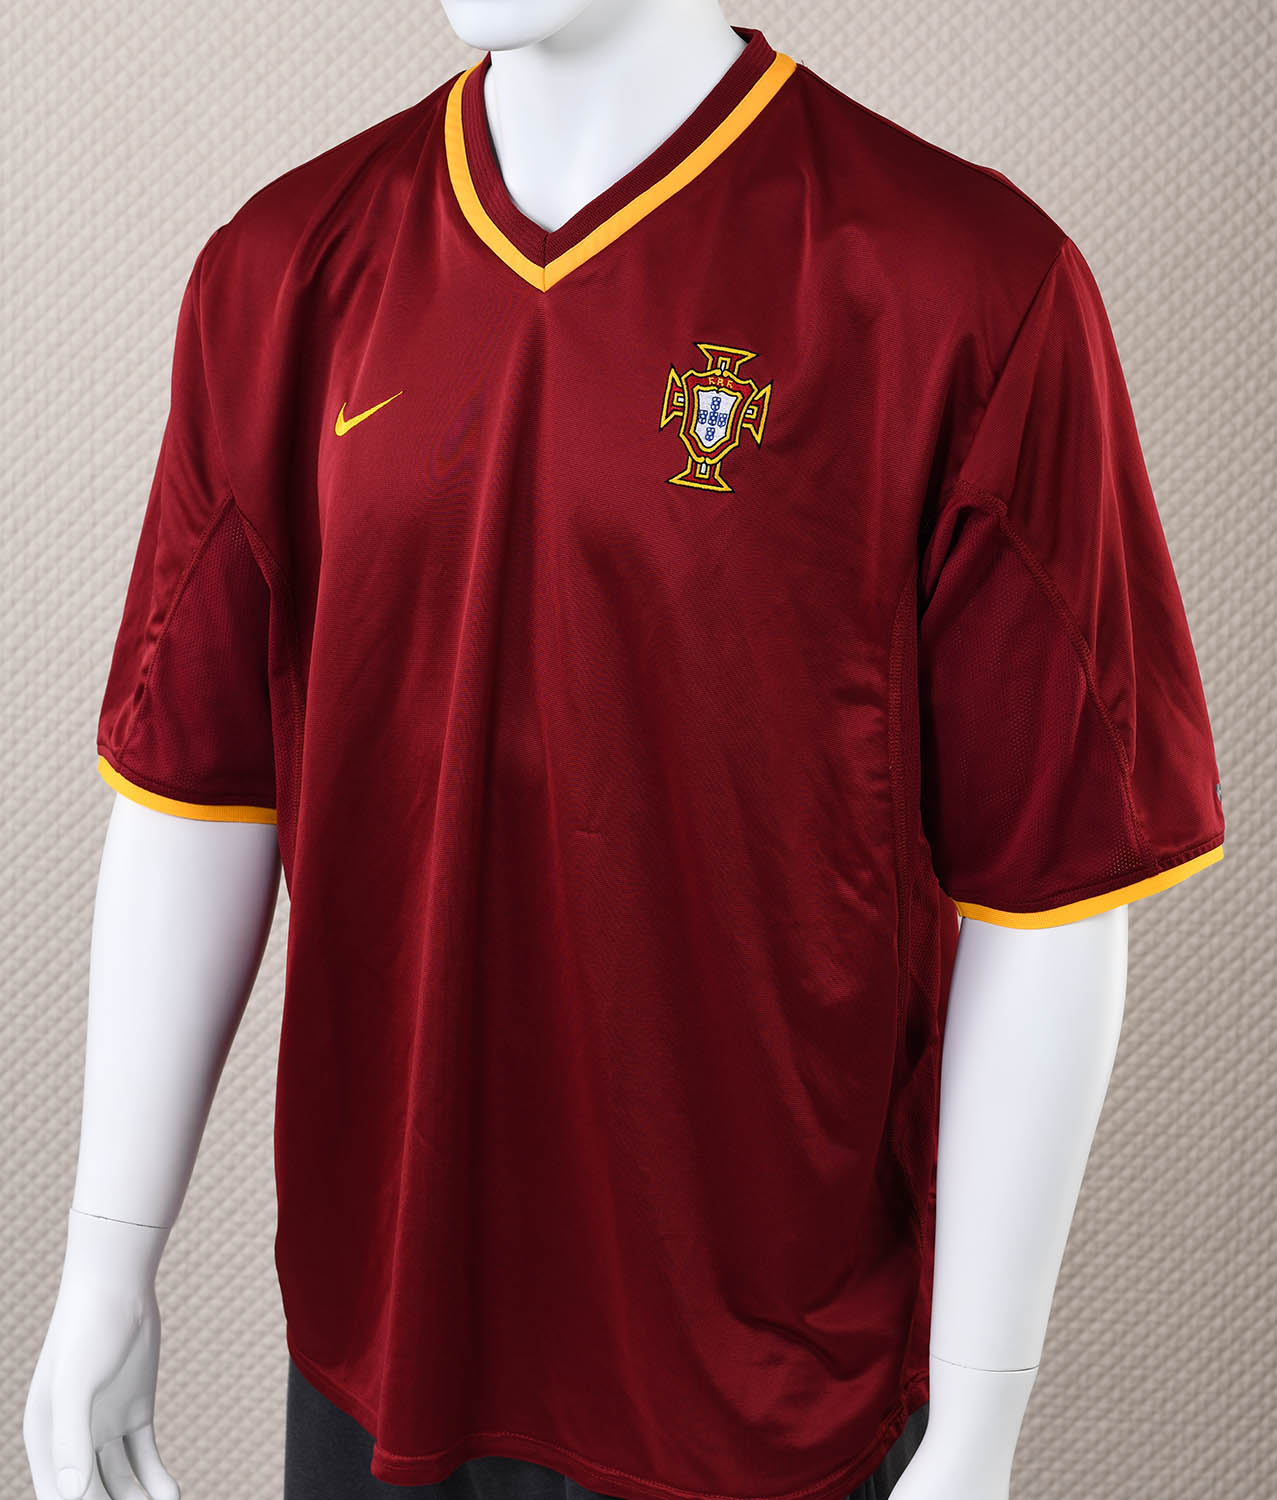 World Cup 2002 Nike Portugal Jersey